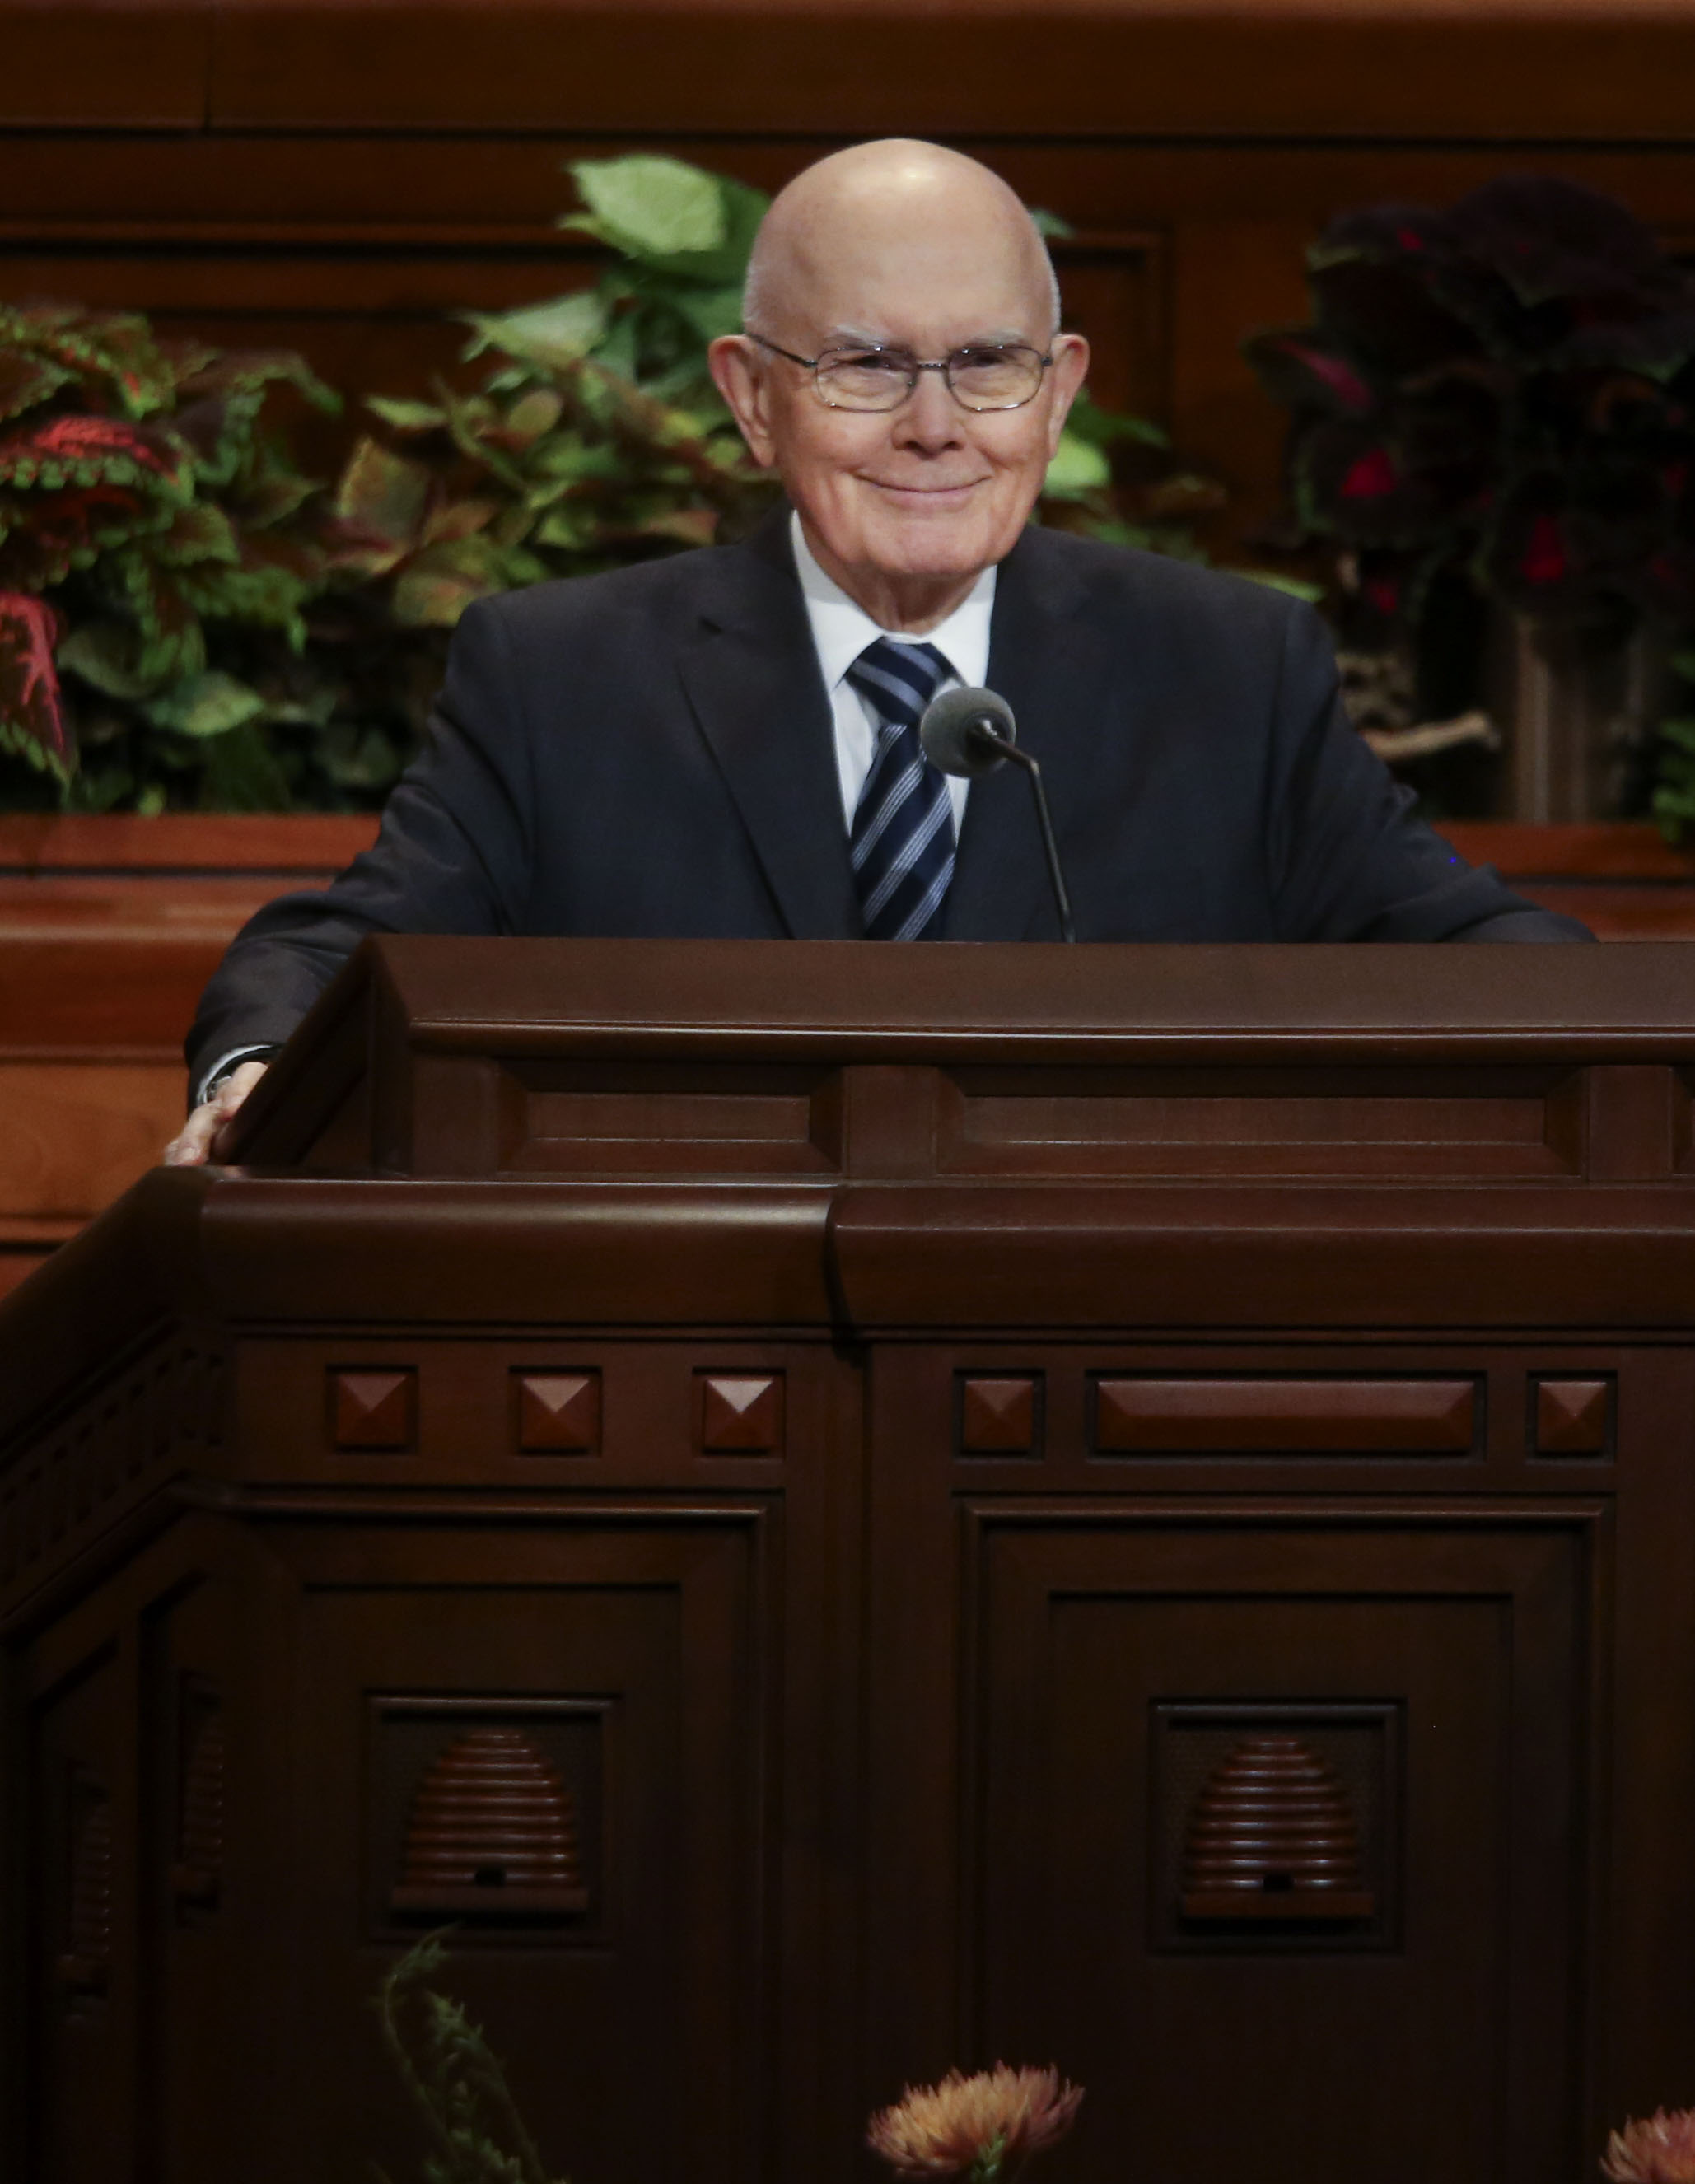 President Dallin H. Oaks, first counselor in the First Presidency of The Church of Jesus Christ of Latter-day Saints, speaks during the Sunday afternoon session of the 189th Semiannual General Conference of The Church of Jesus Christ of Latter-day Saints at the Conference Center in Salt Lake City on Sunday, Oct. 6, 2019.